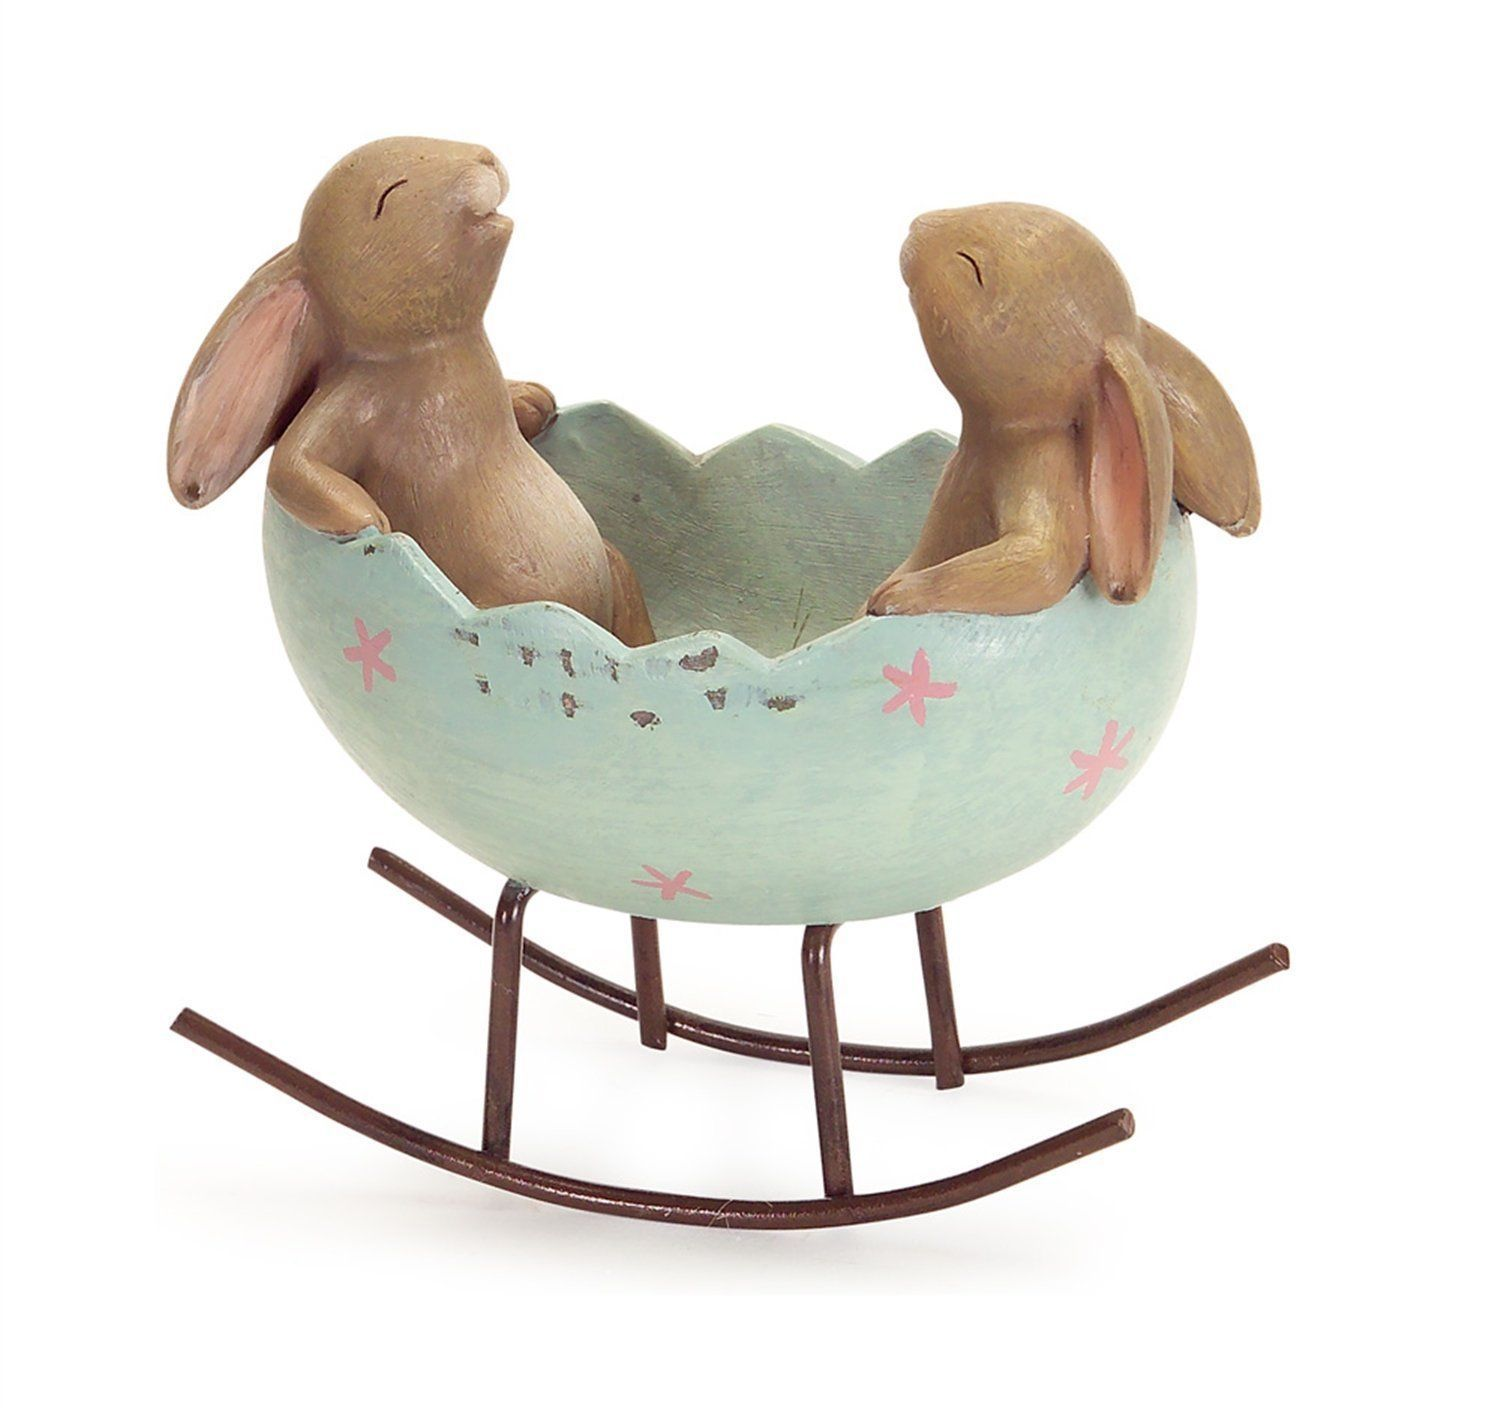 Laughing Bunny Rabbits Rocking in an Easter Egg Cradle WITH FLAWS